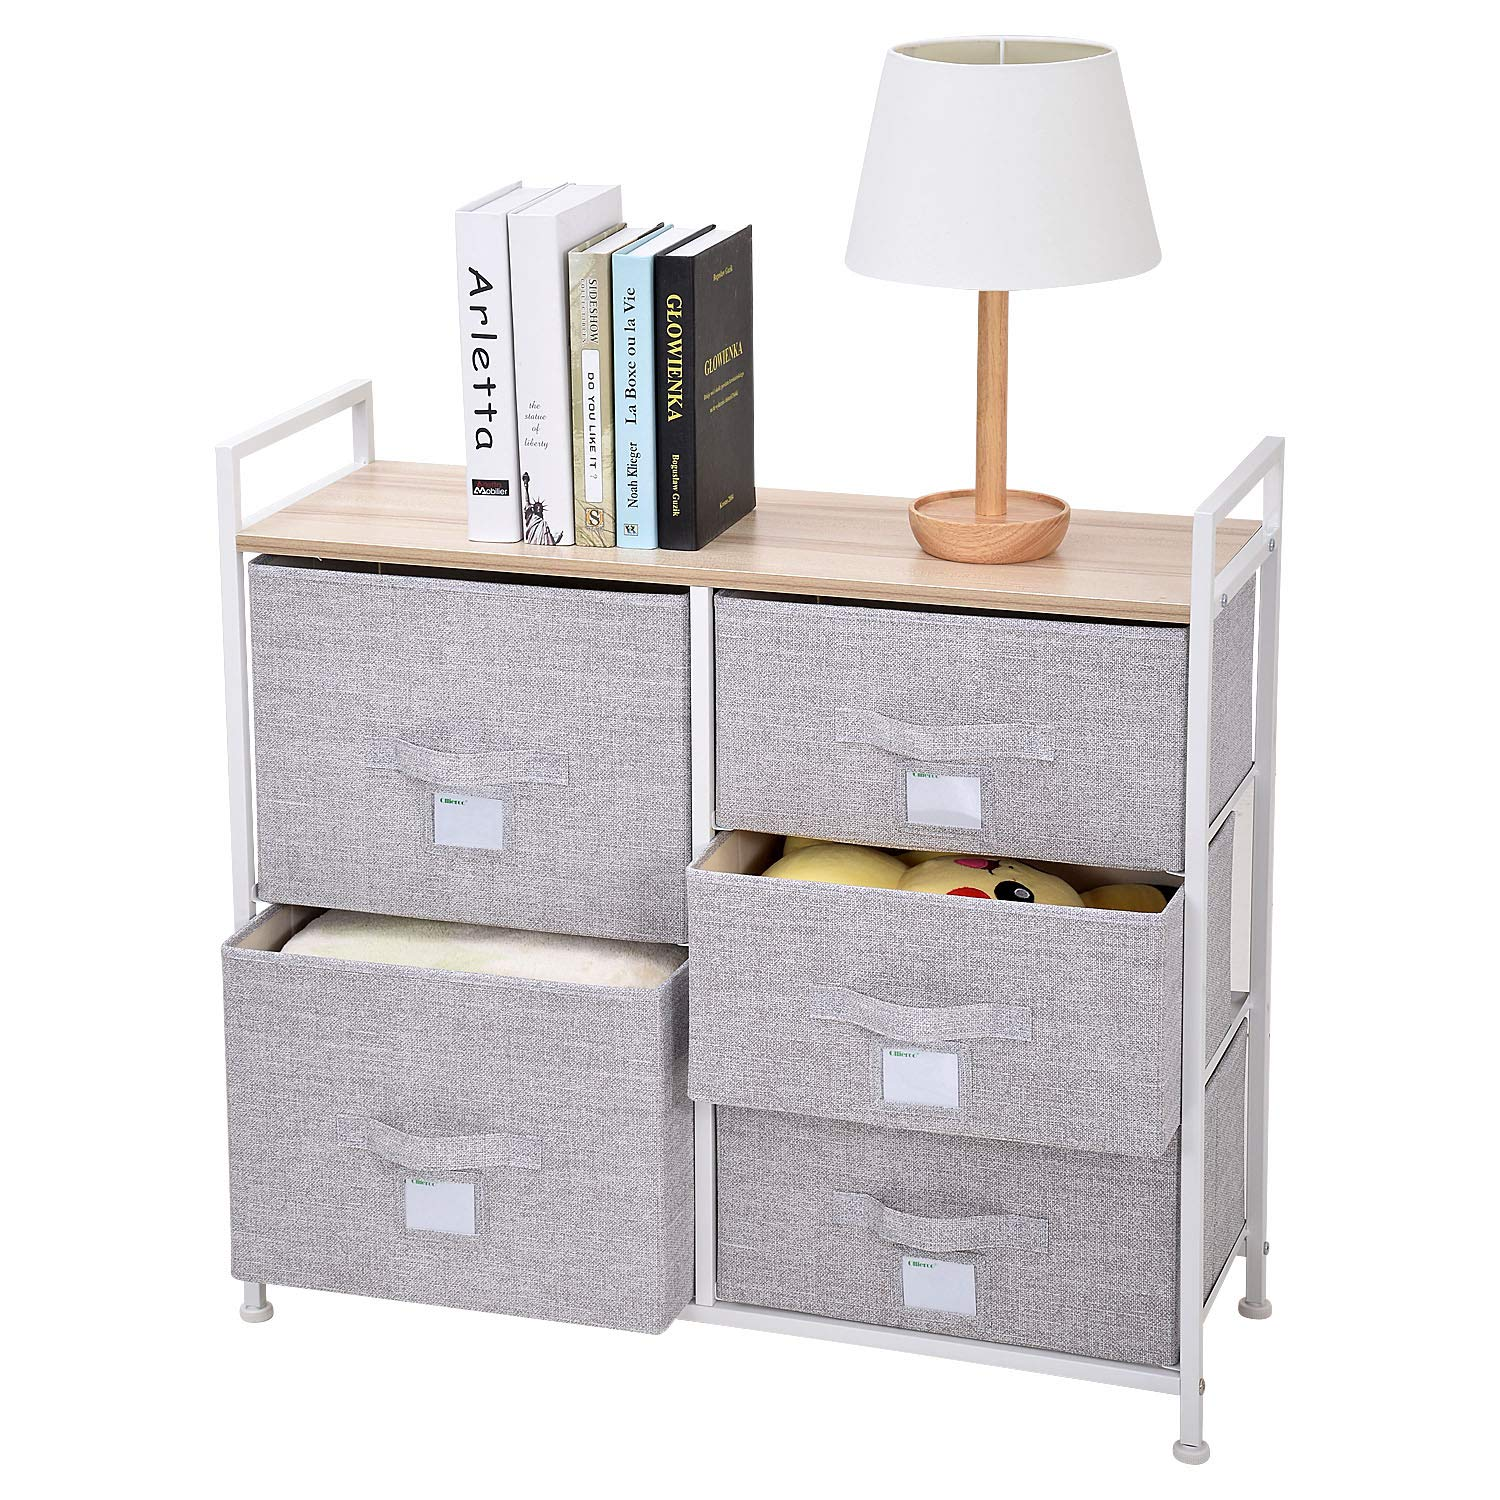 Ollieroo Fabric 5-Drawer Storage Organizer Dresser Home Organizer Bedside Table End Tables - Linen